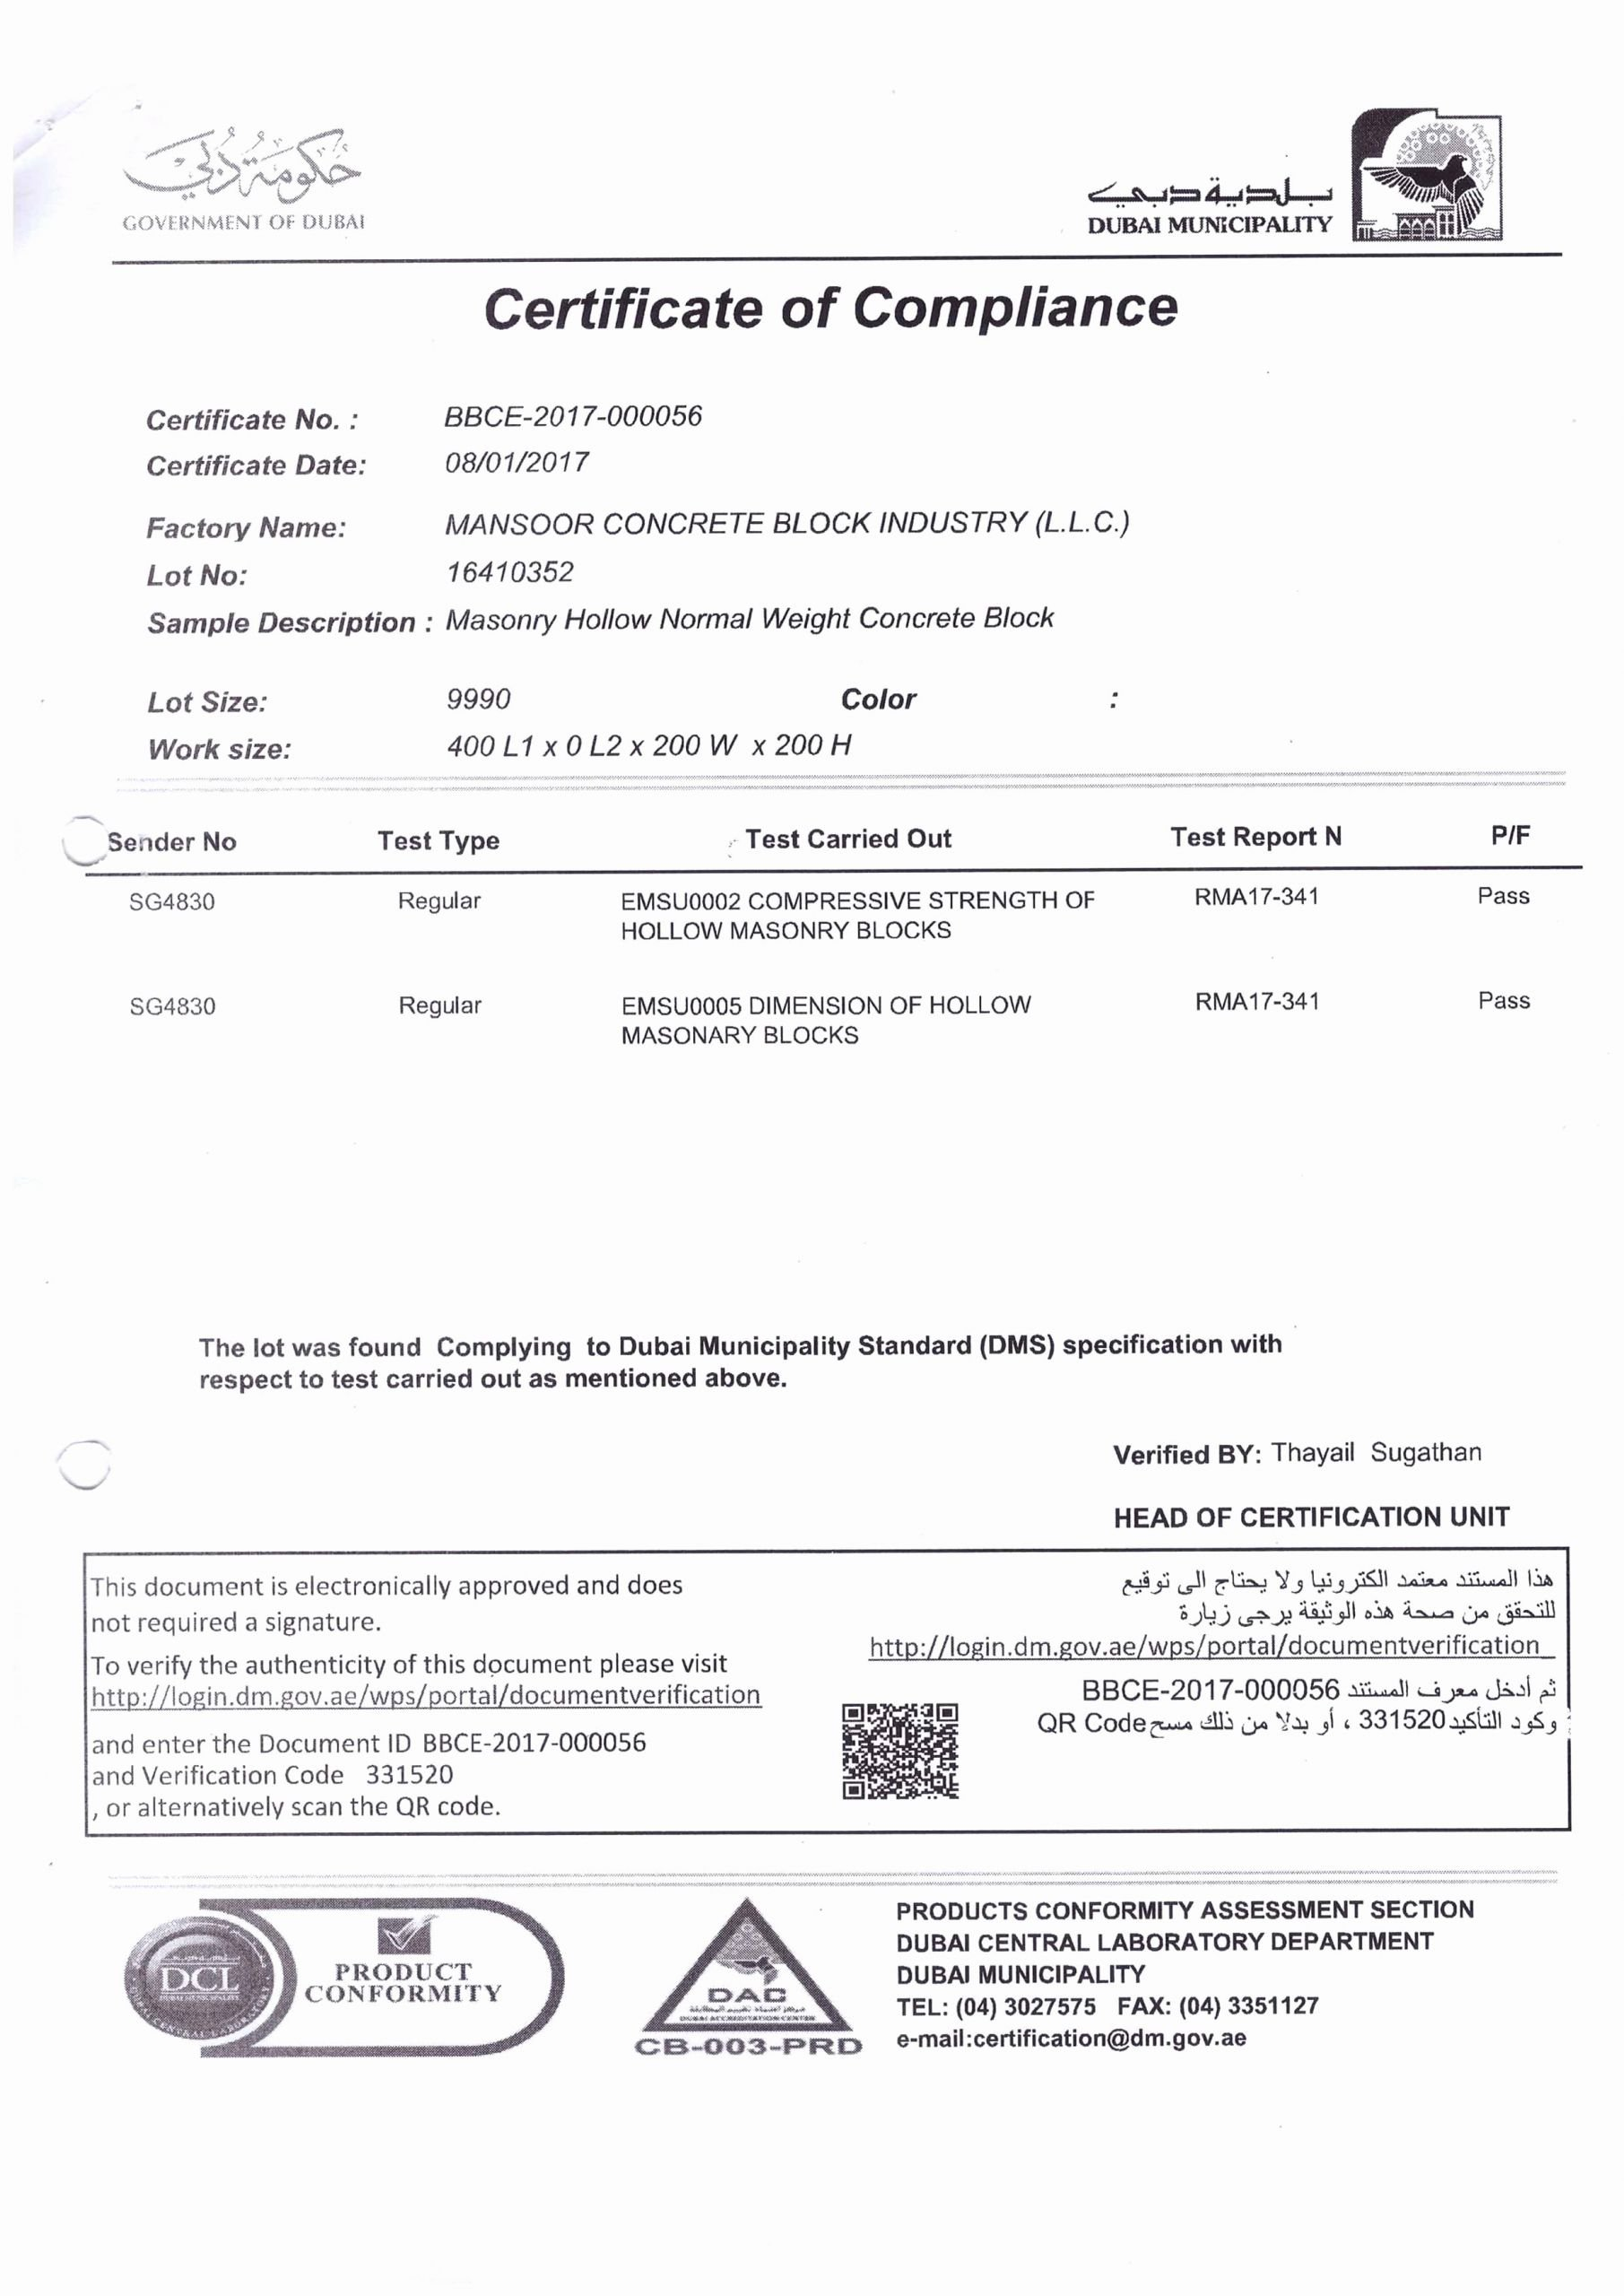 Reach Certificate Of Compliance Template Lovely Certificates for solid Blocks – Mansoor Concrete Block